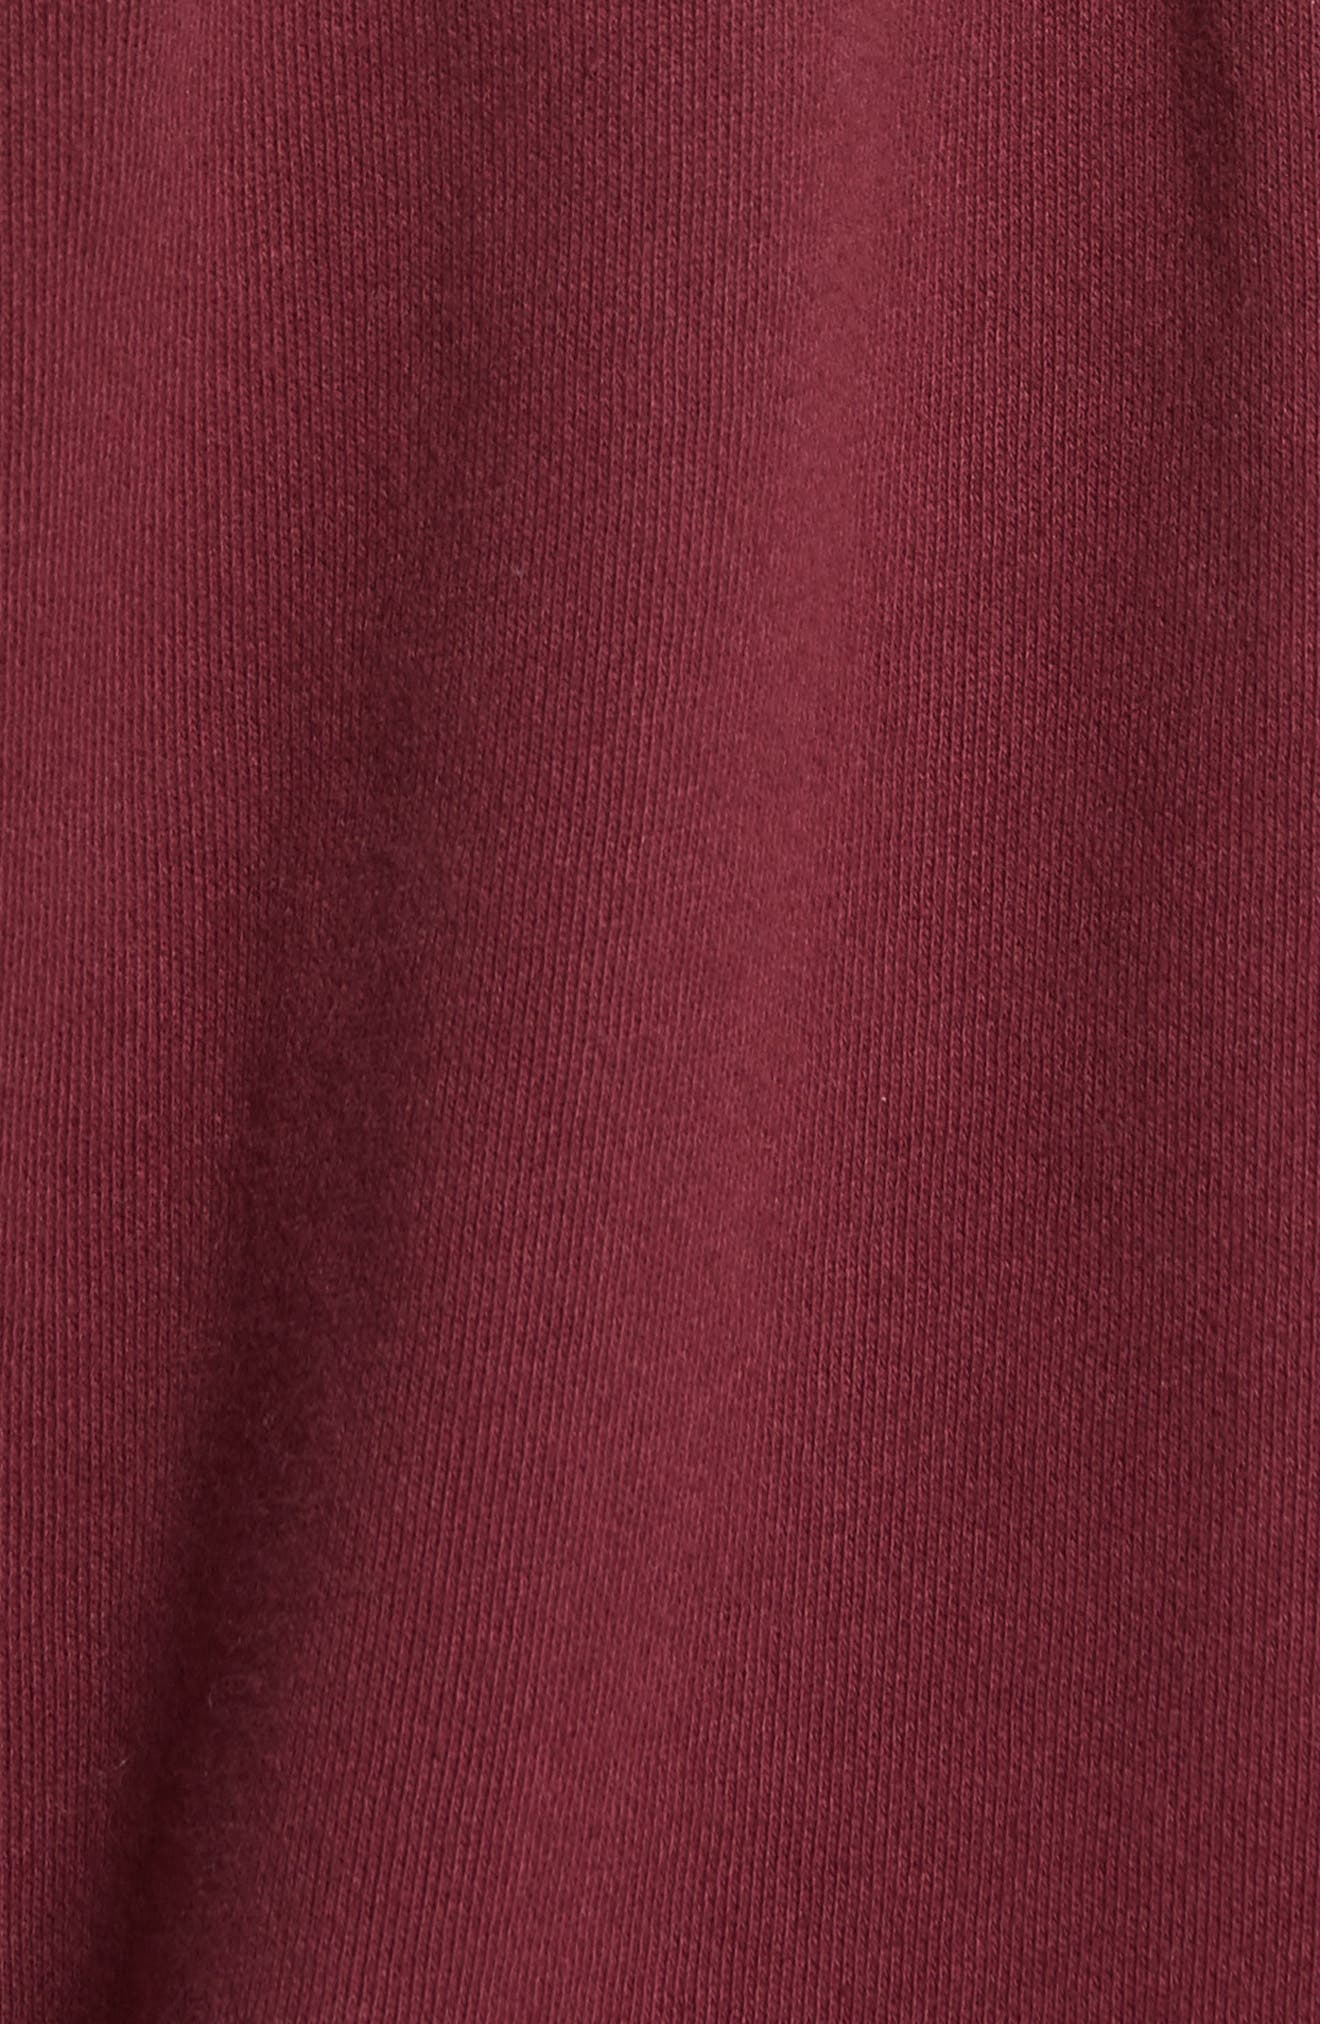 Westwood Cardigan,                             Alternate thumbnail 5, color,                             Wine